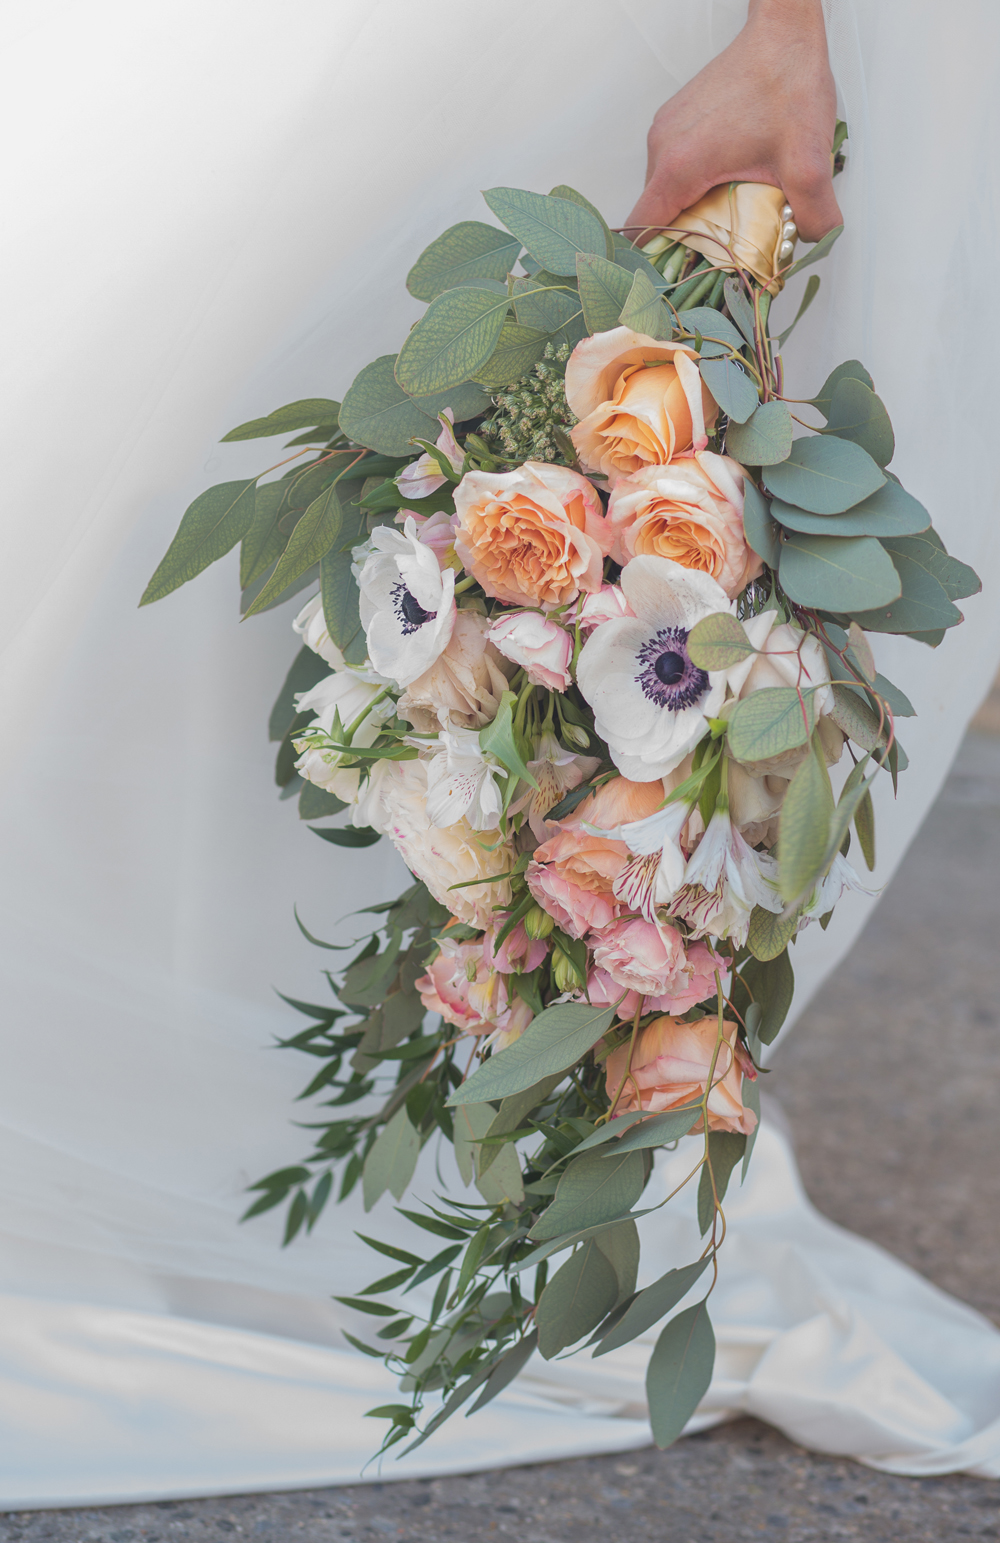 Bridal bouquet with anemone and garden roses accented with lots of greenery